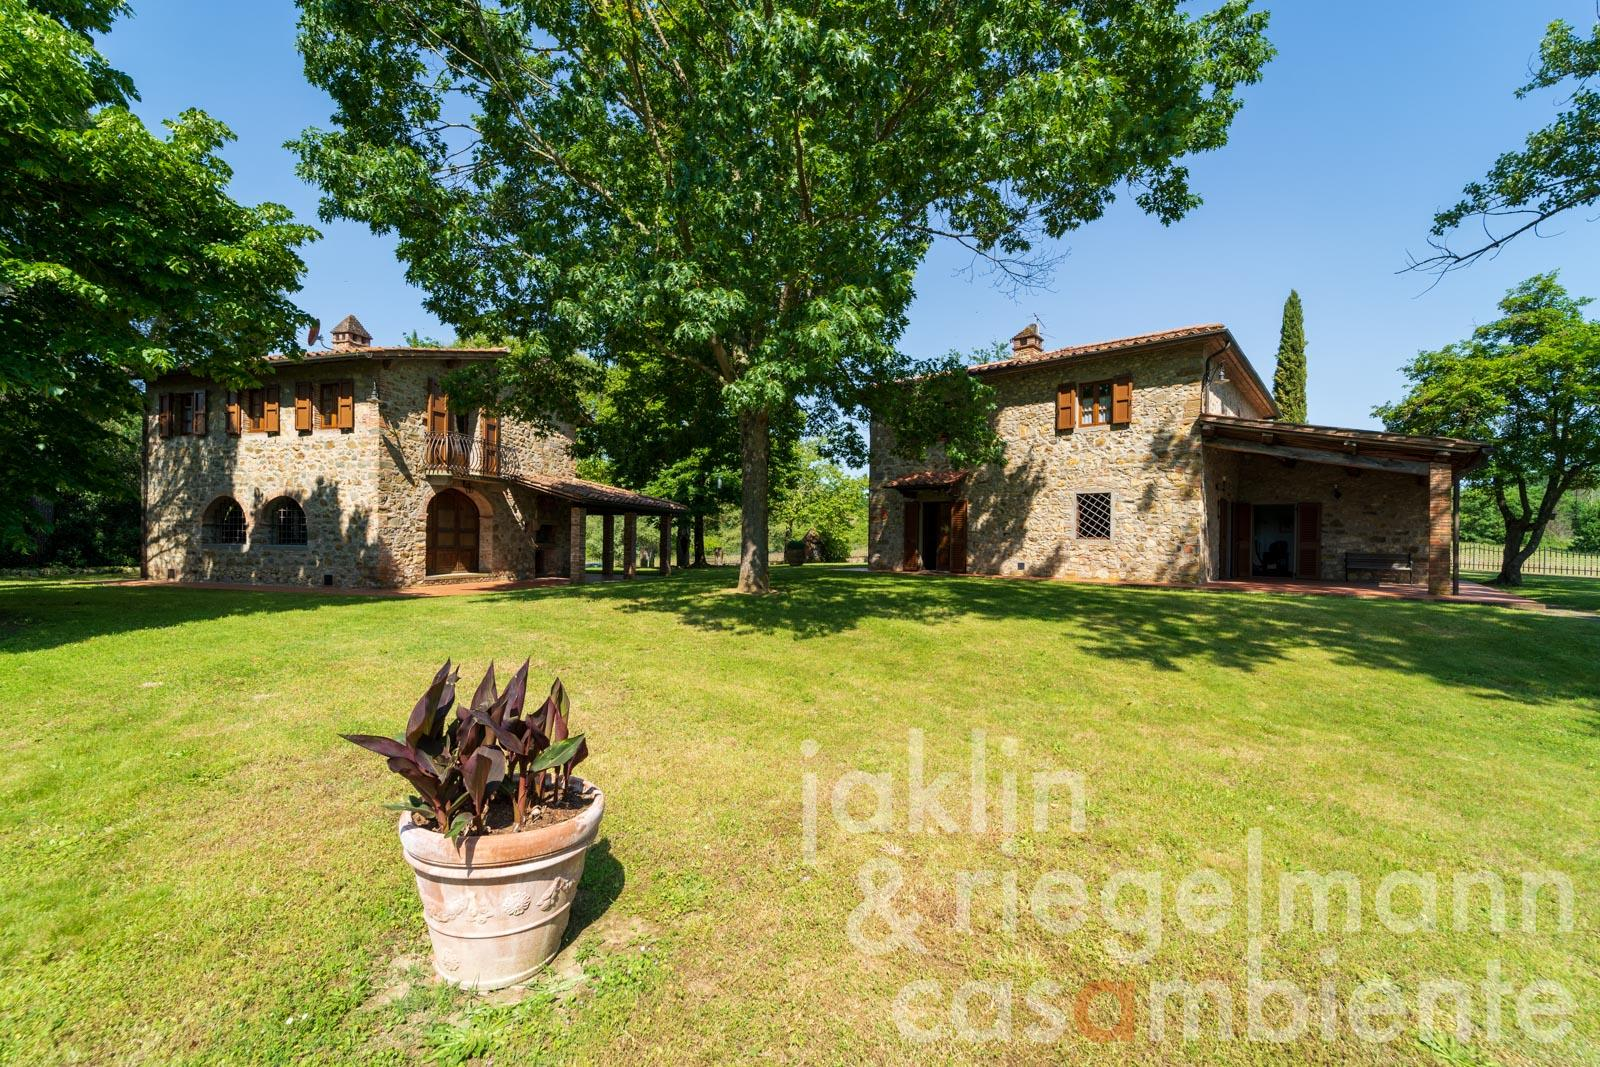 Quietly located restored natural stone property with large garden near Arezzo in Tuscany